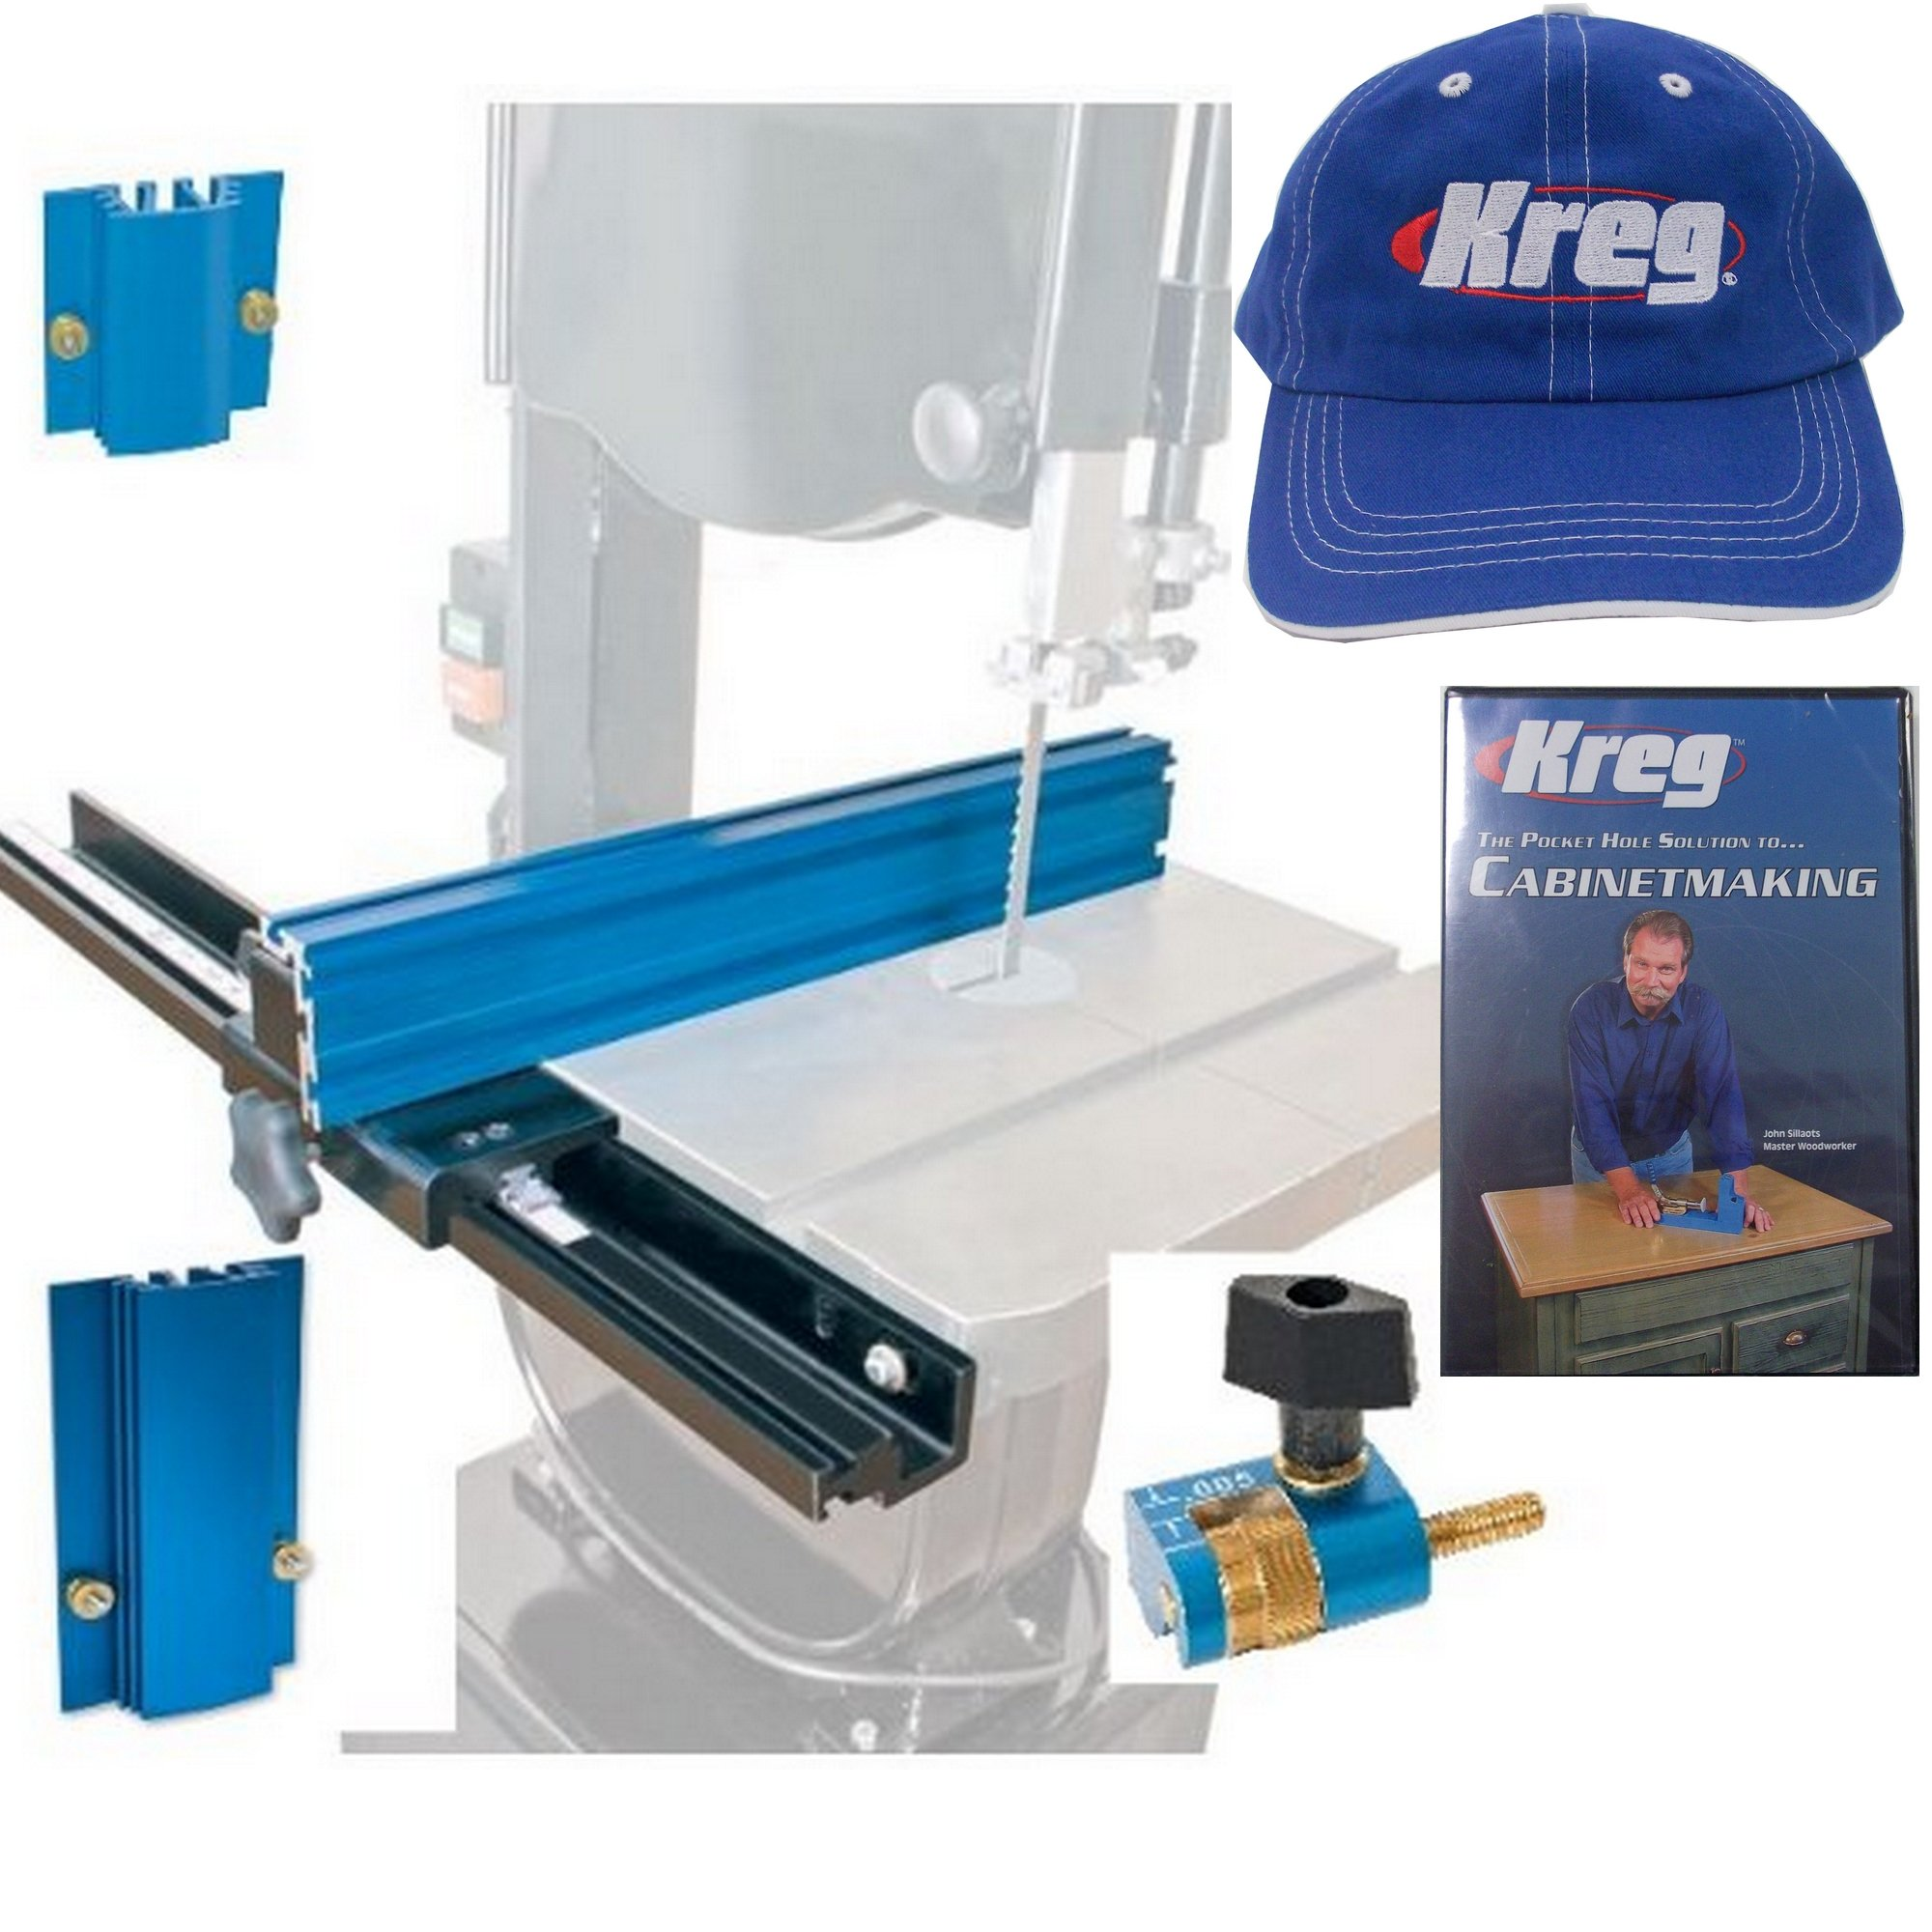 KMS7200 Band Saw Fence with KMS7213 & KMS7214 & KMS7215 HAT and Cabinetmaking DVD